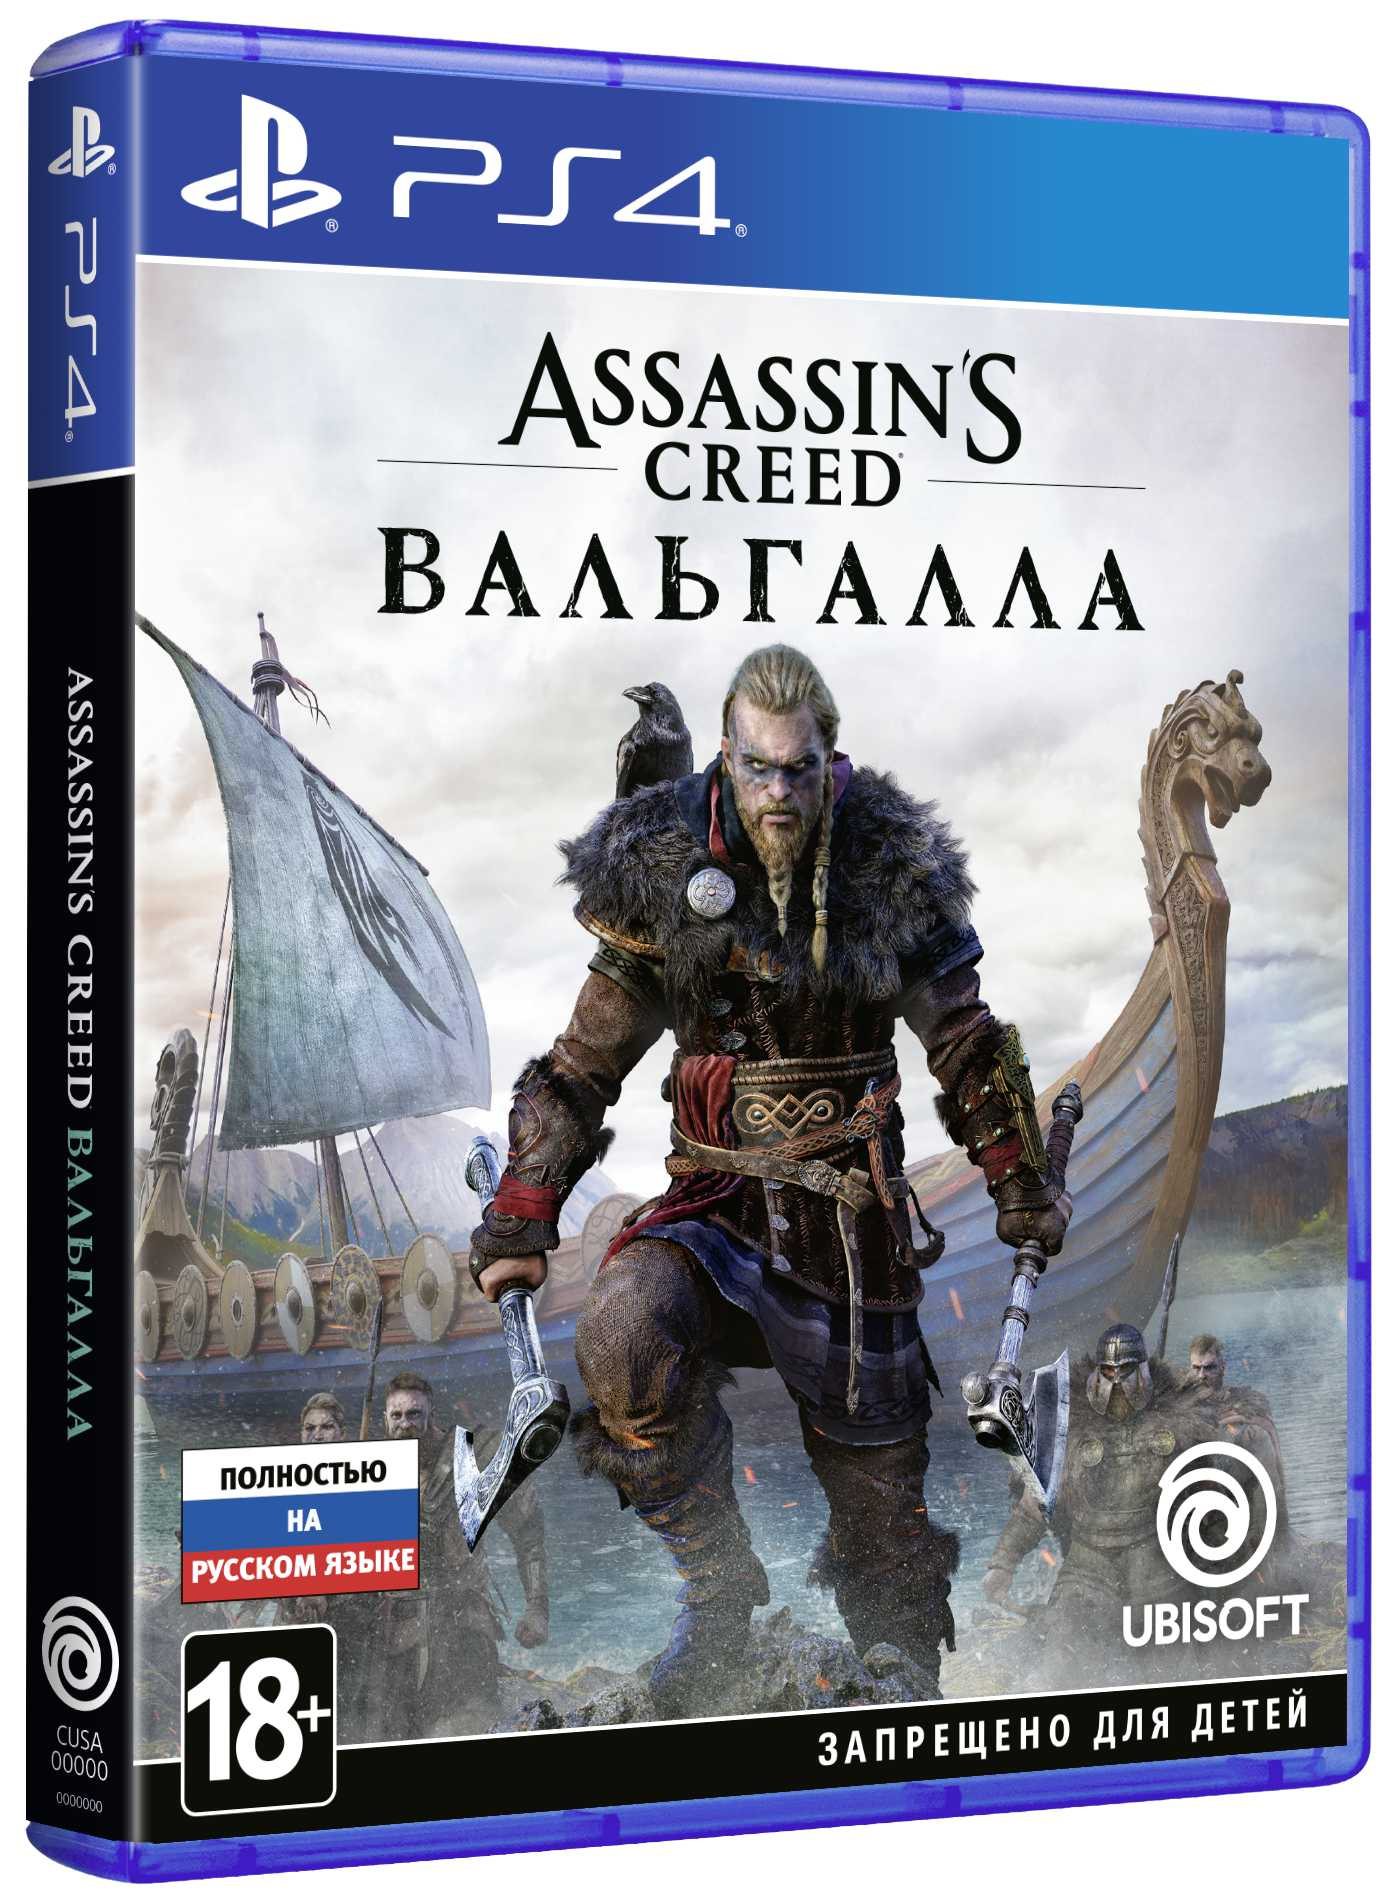 Assassin's Creed: Вальгалла [PS4] фото